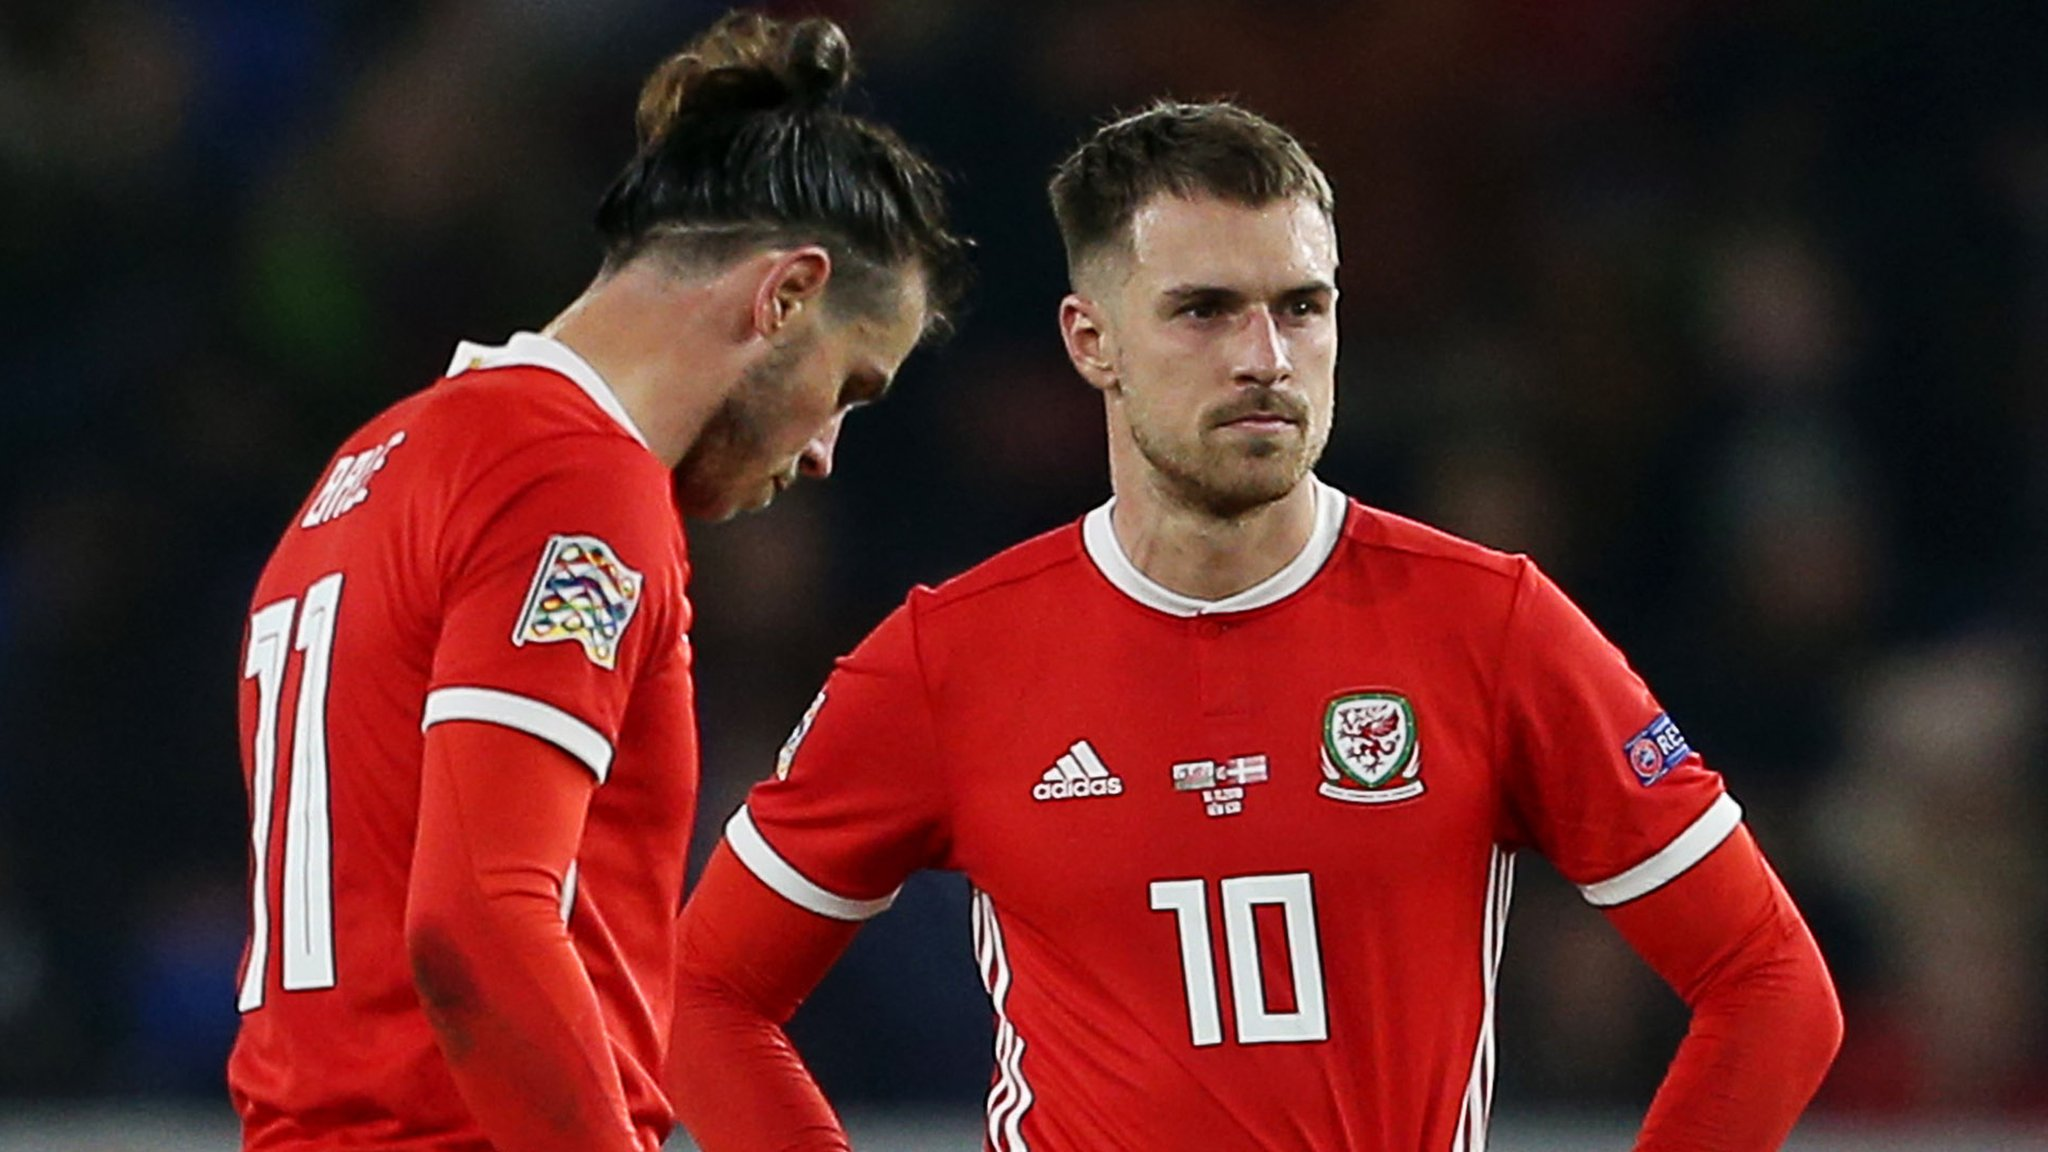 Aaron Ramsey: Wales midfielder out of opening Euro 2020 qualifier